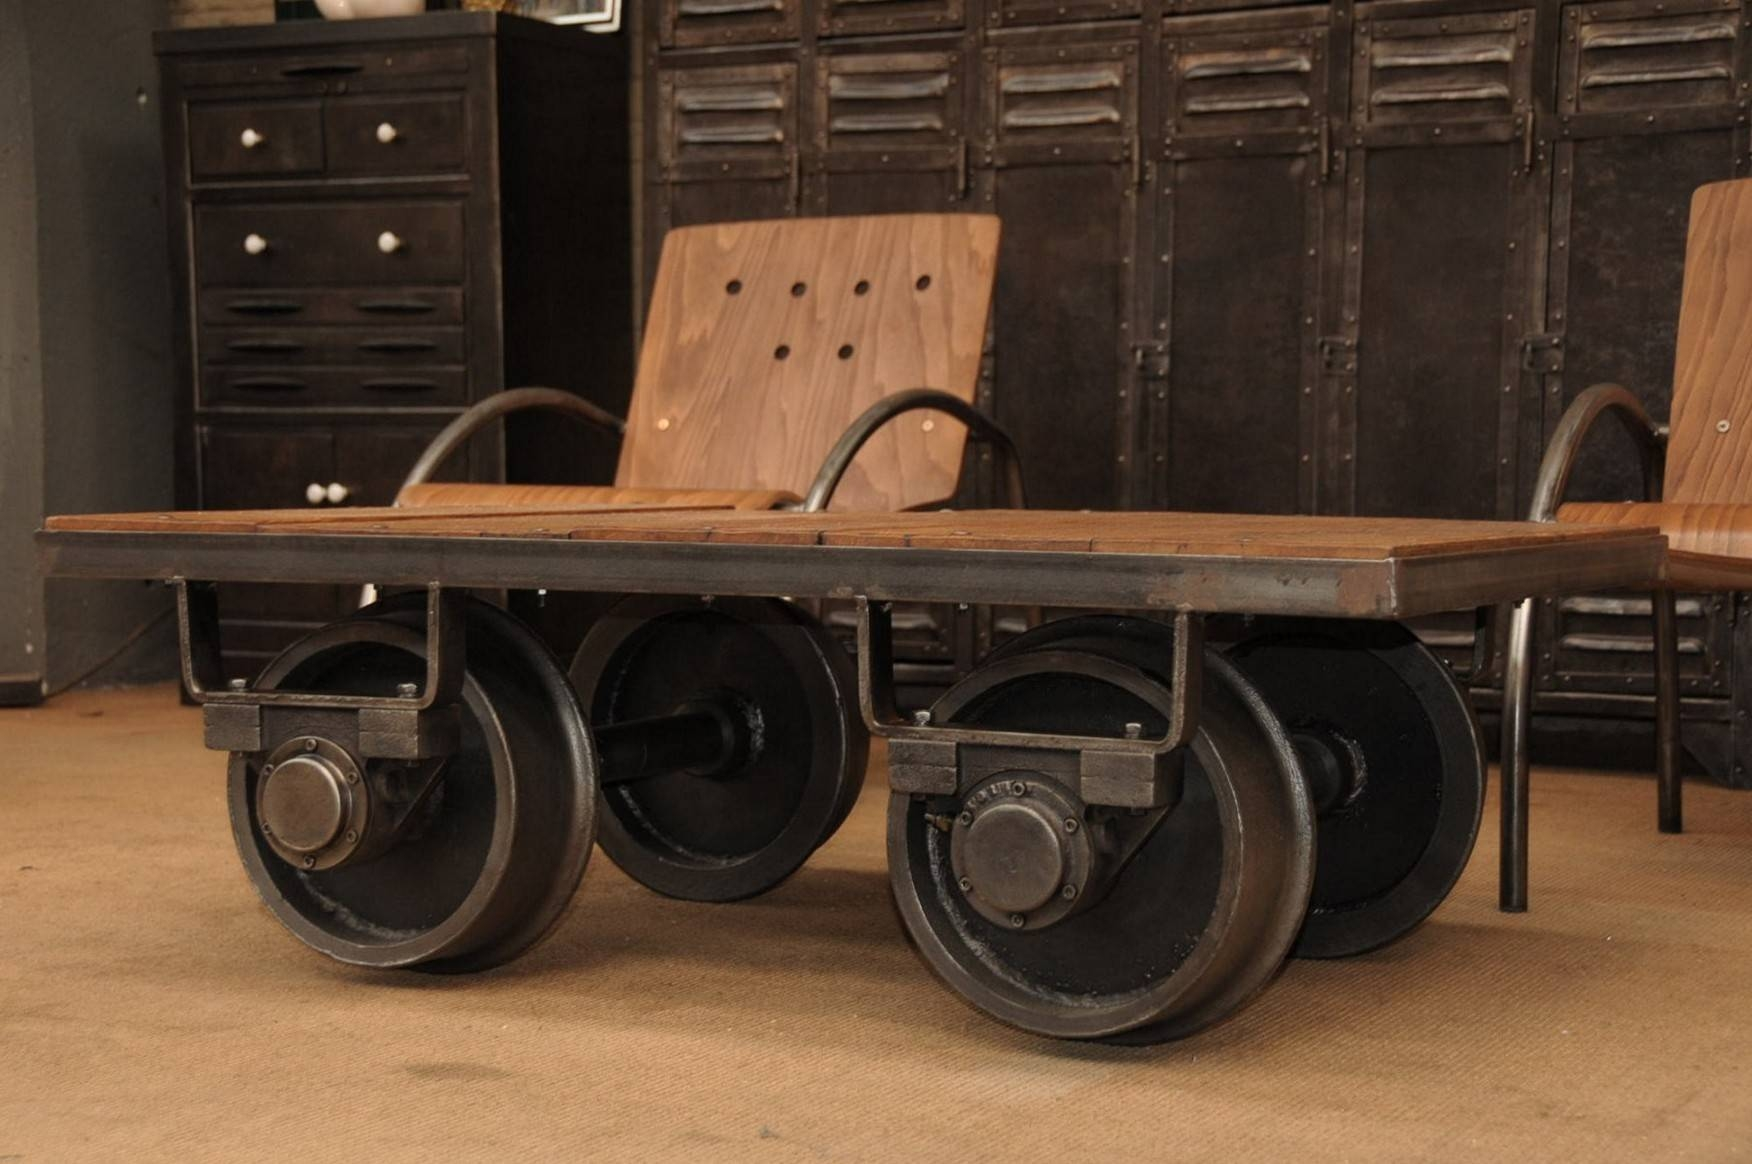 Factory Cart Coffee Table Wheels with regard to Coffee Tables With Wheels (Image 19 of 30)